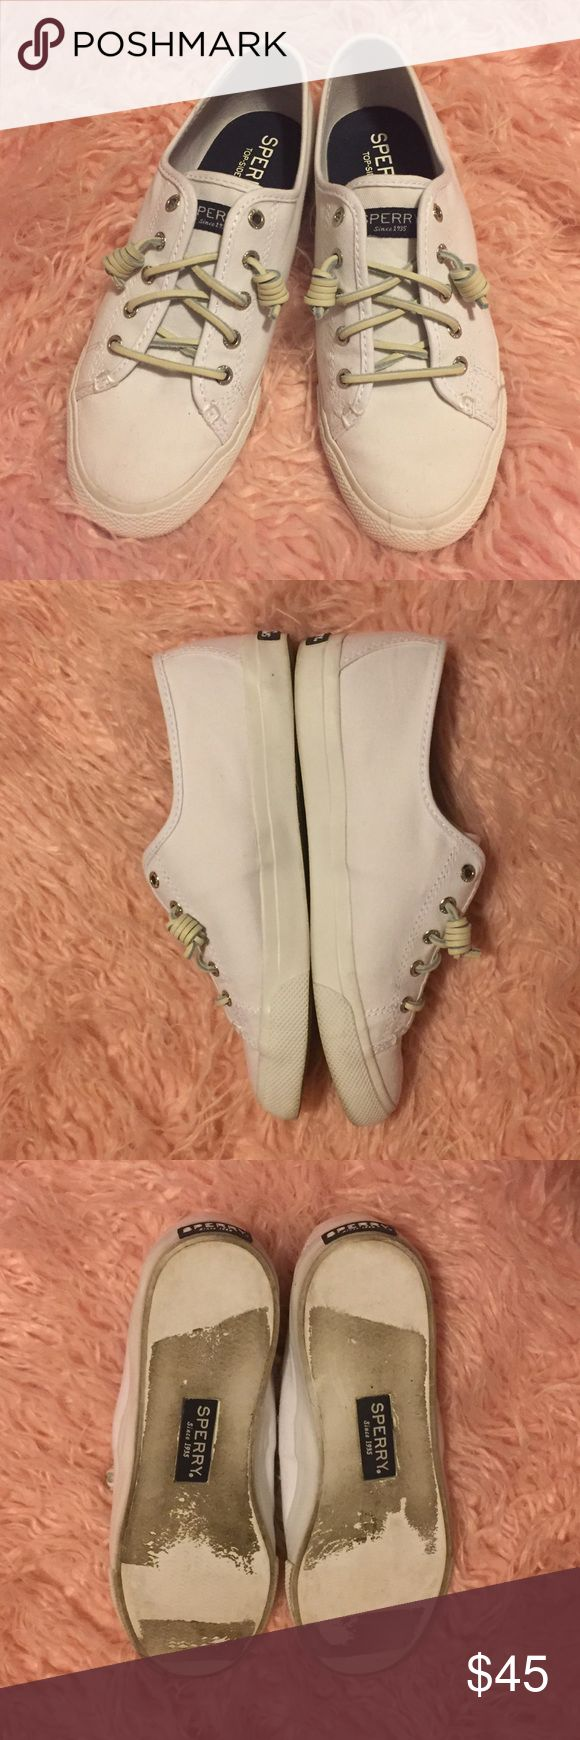 Sperry Top-Sider Sneakers Aside from the bottoms these sneakers are in great condition. The inside is like new! There are a few small scuffs but they are barely noticeable! Sperry Top-Sider Shoes Sneakers